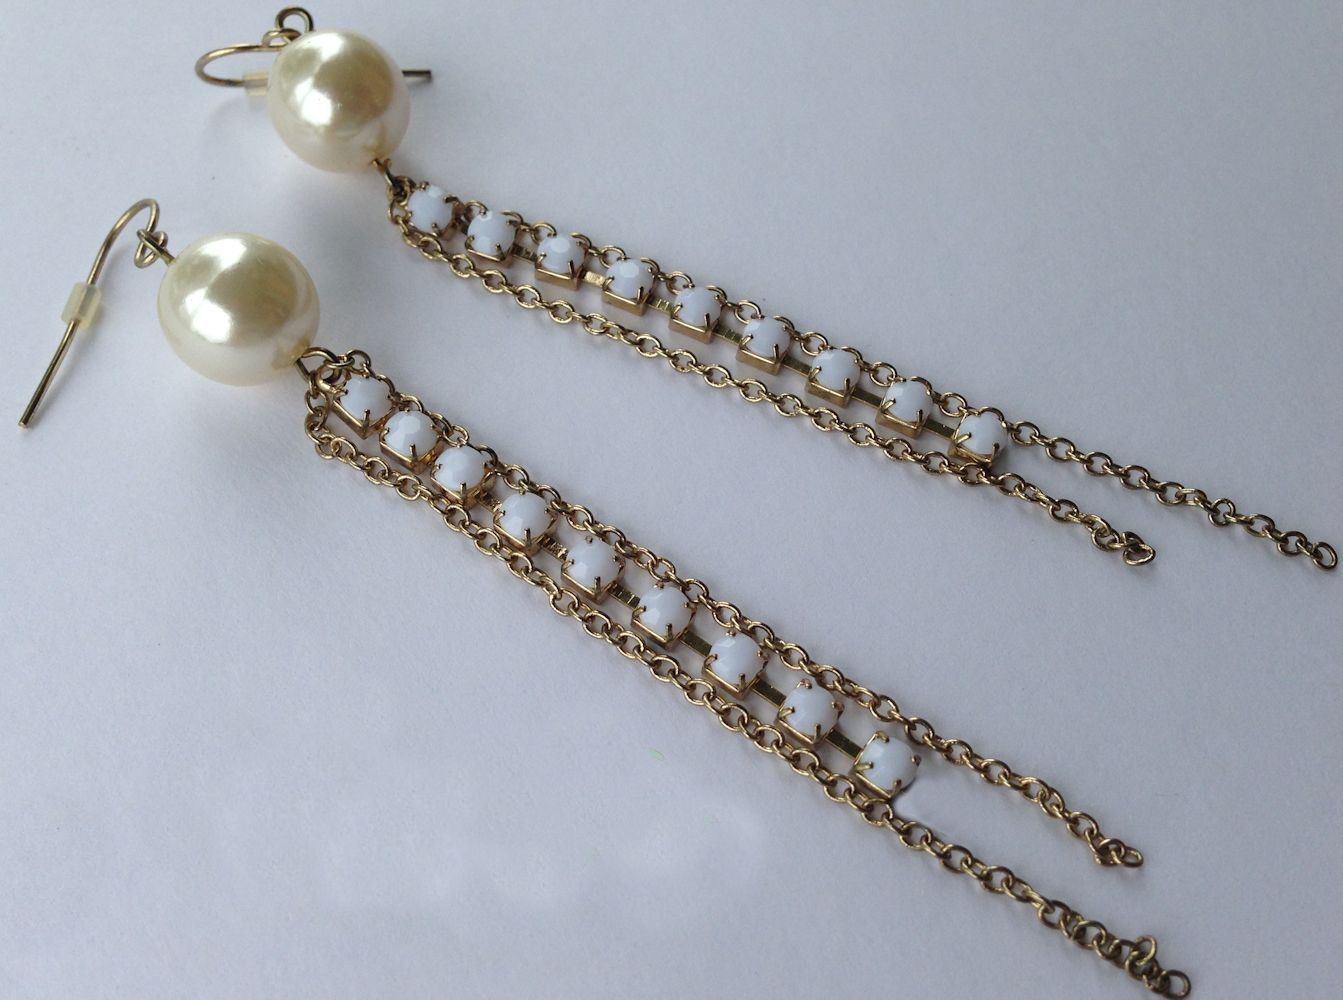 VTG Gold Chain Pearl Bead/White Opaque Rhinestones Long Dangle Pierced Earrings image 1